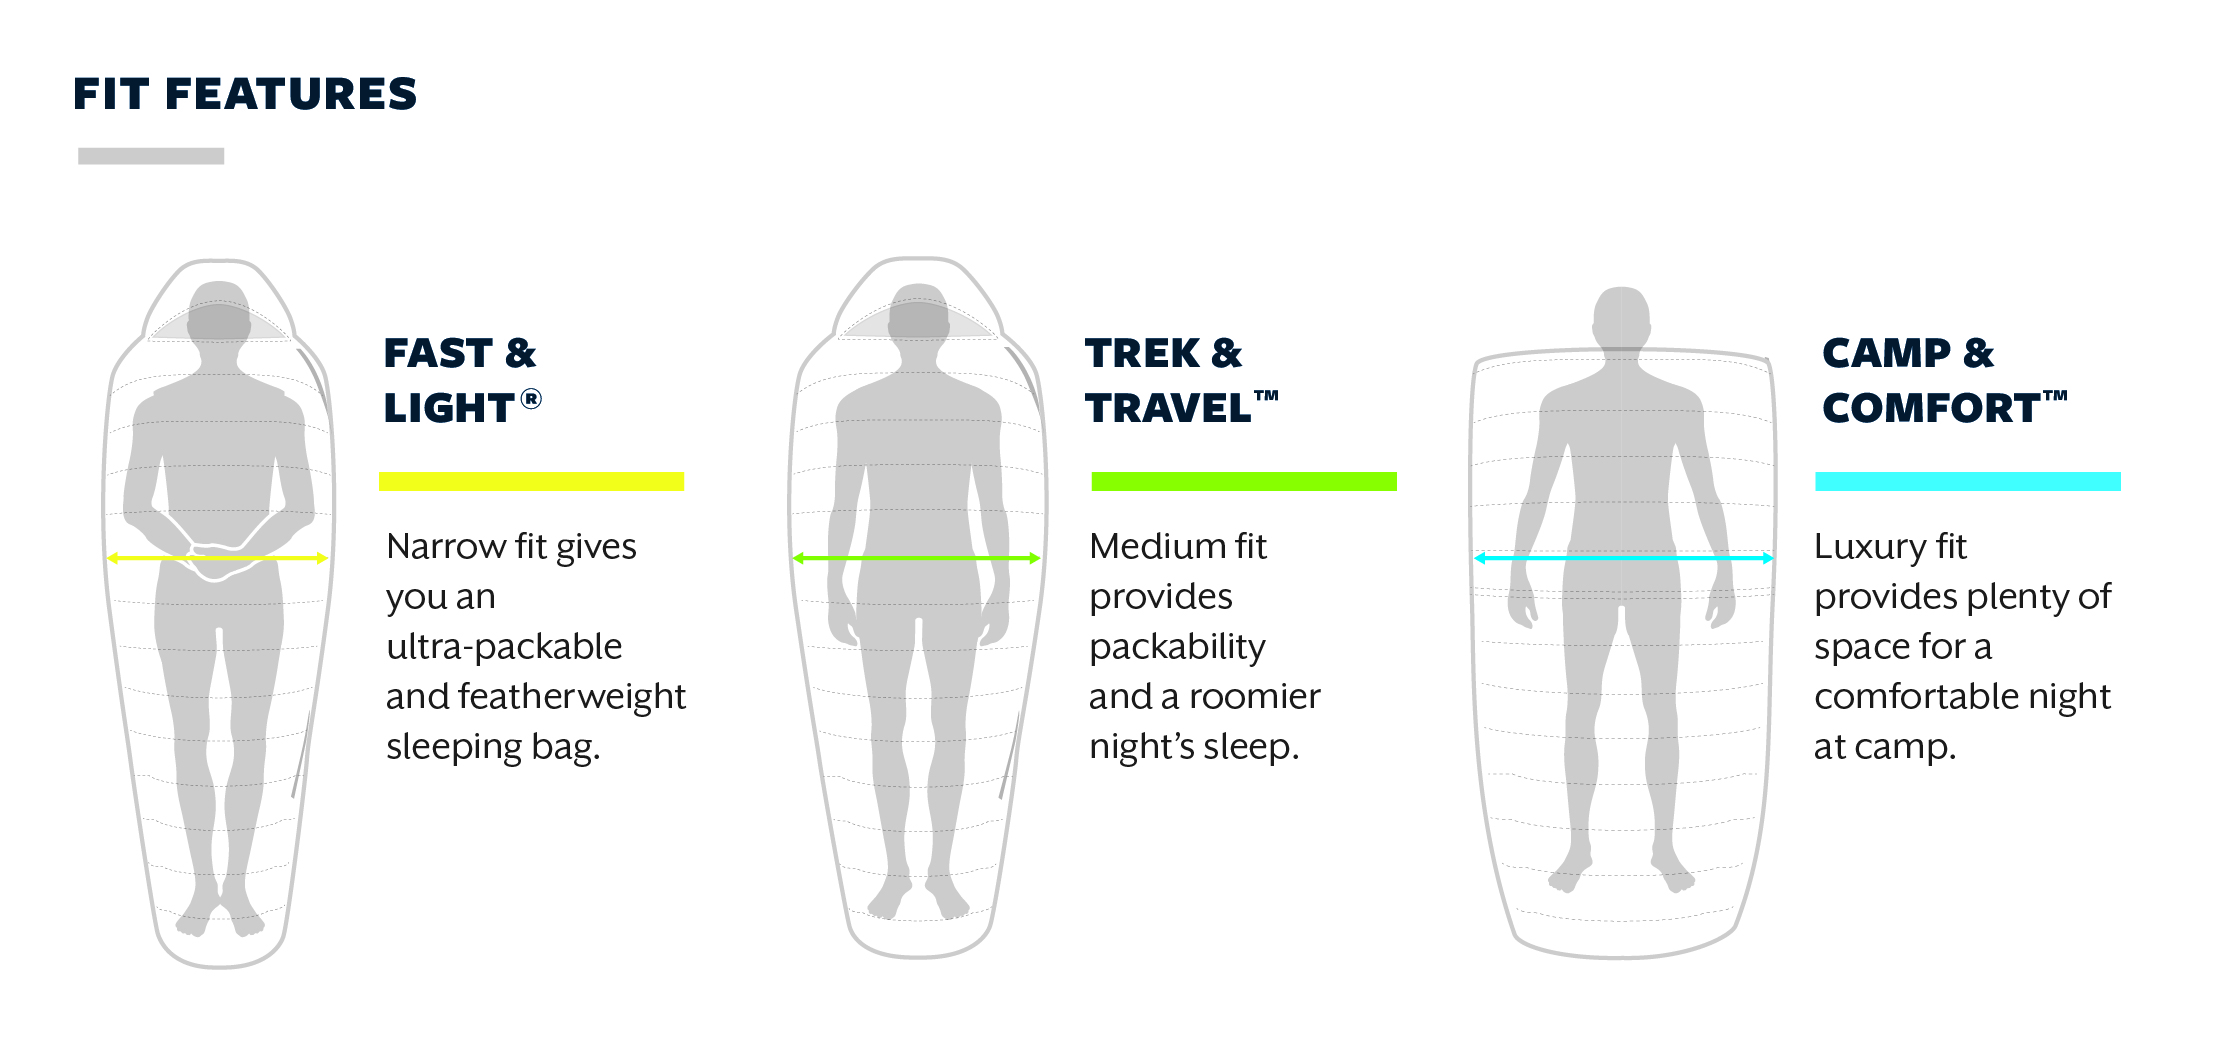 Sleeping bag fit size chart